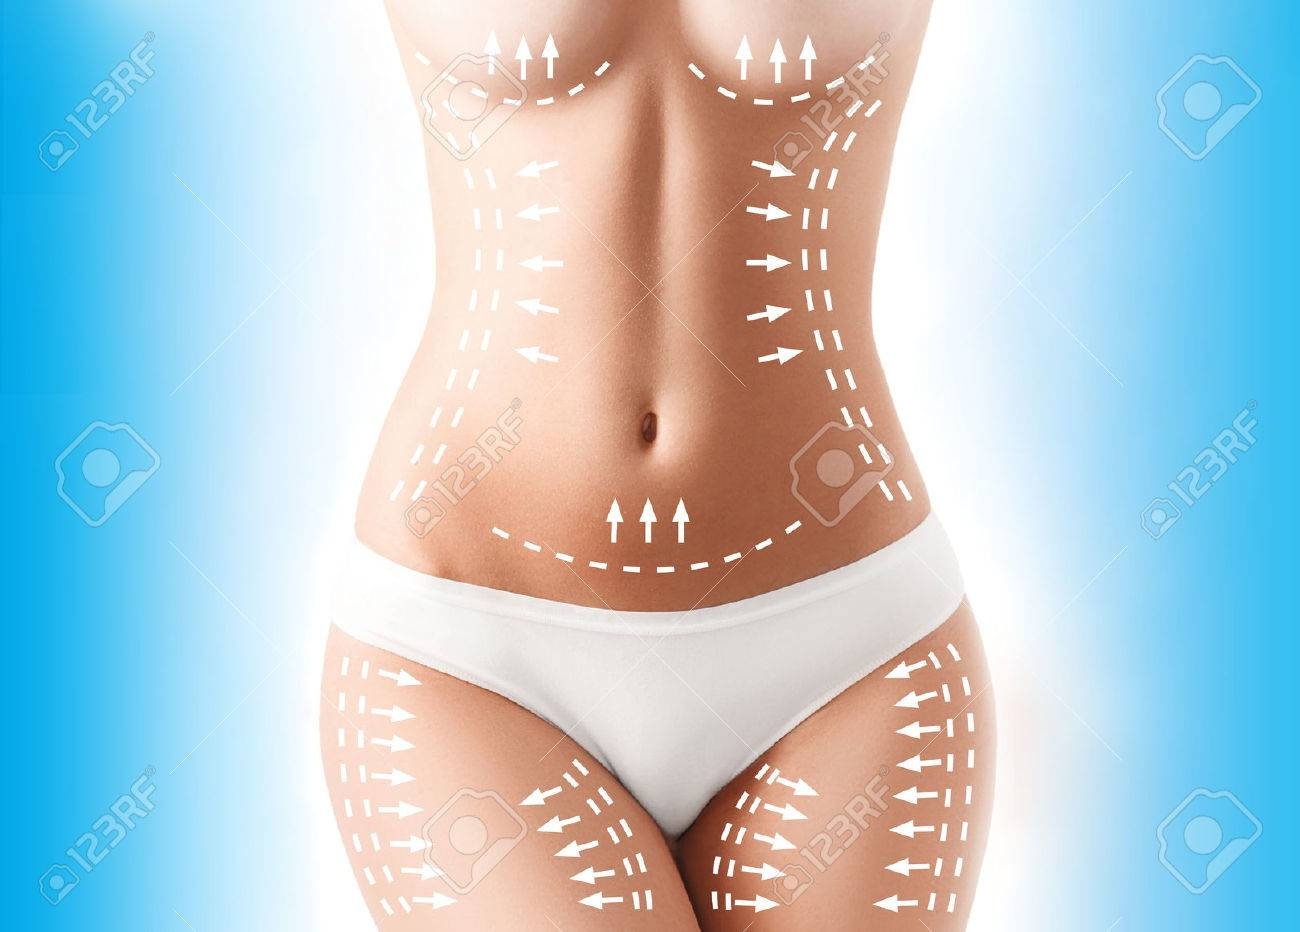 The cellulite removal plan. White markings on young woman body - 73965672